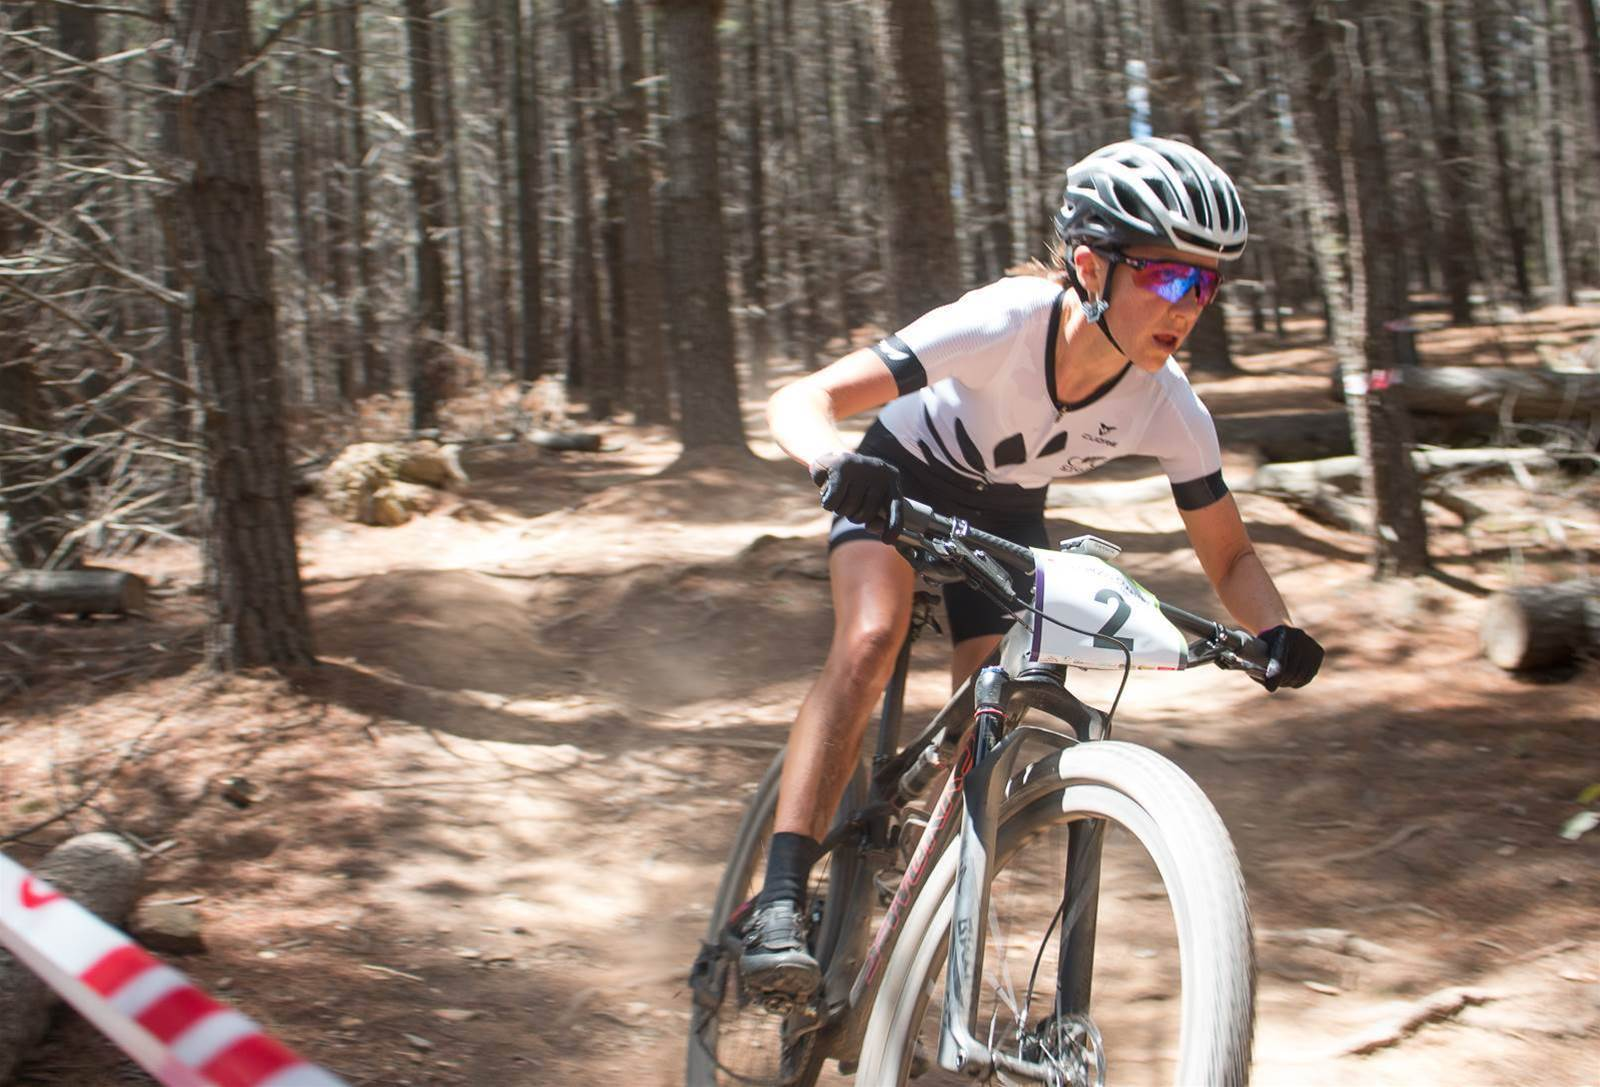 Ivory and Sheppard lead the National XCO Series